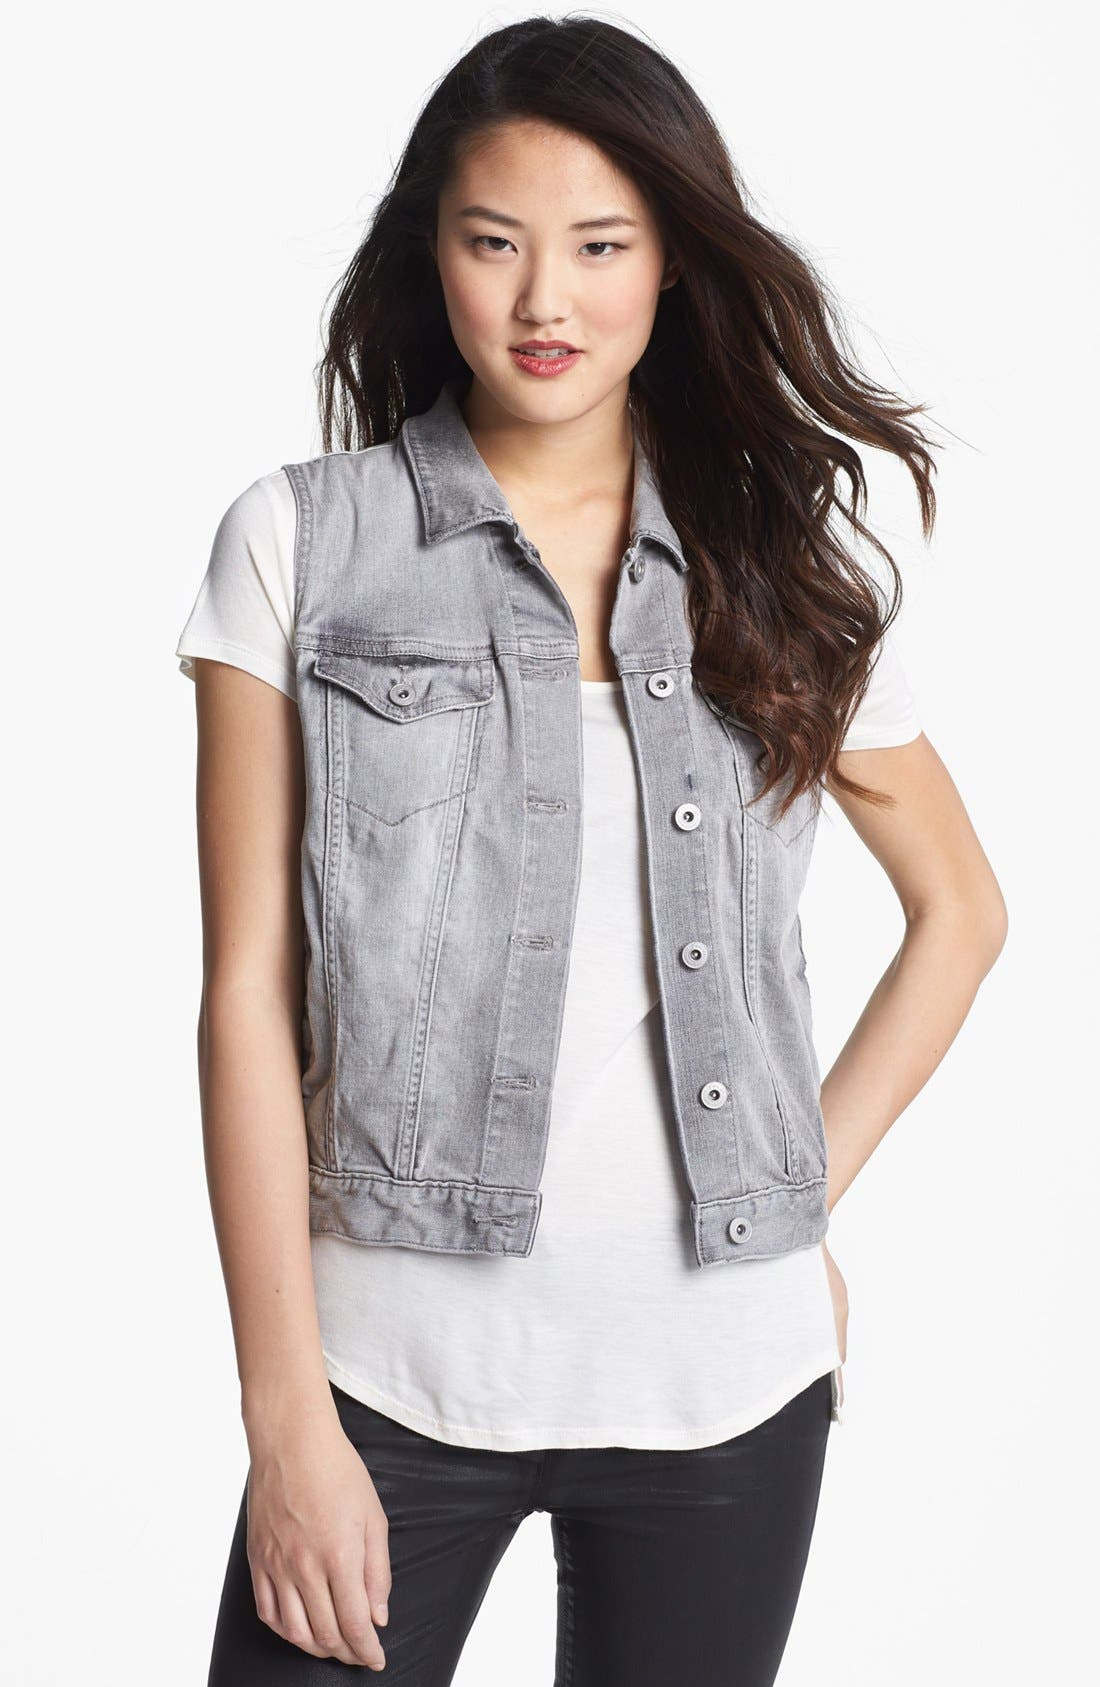 Alternate Image 1 Selected - Two by Vince Camuto Denim Vest